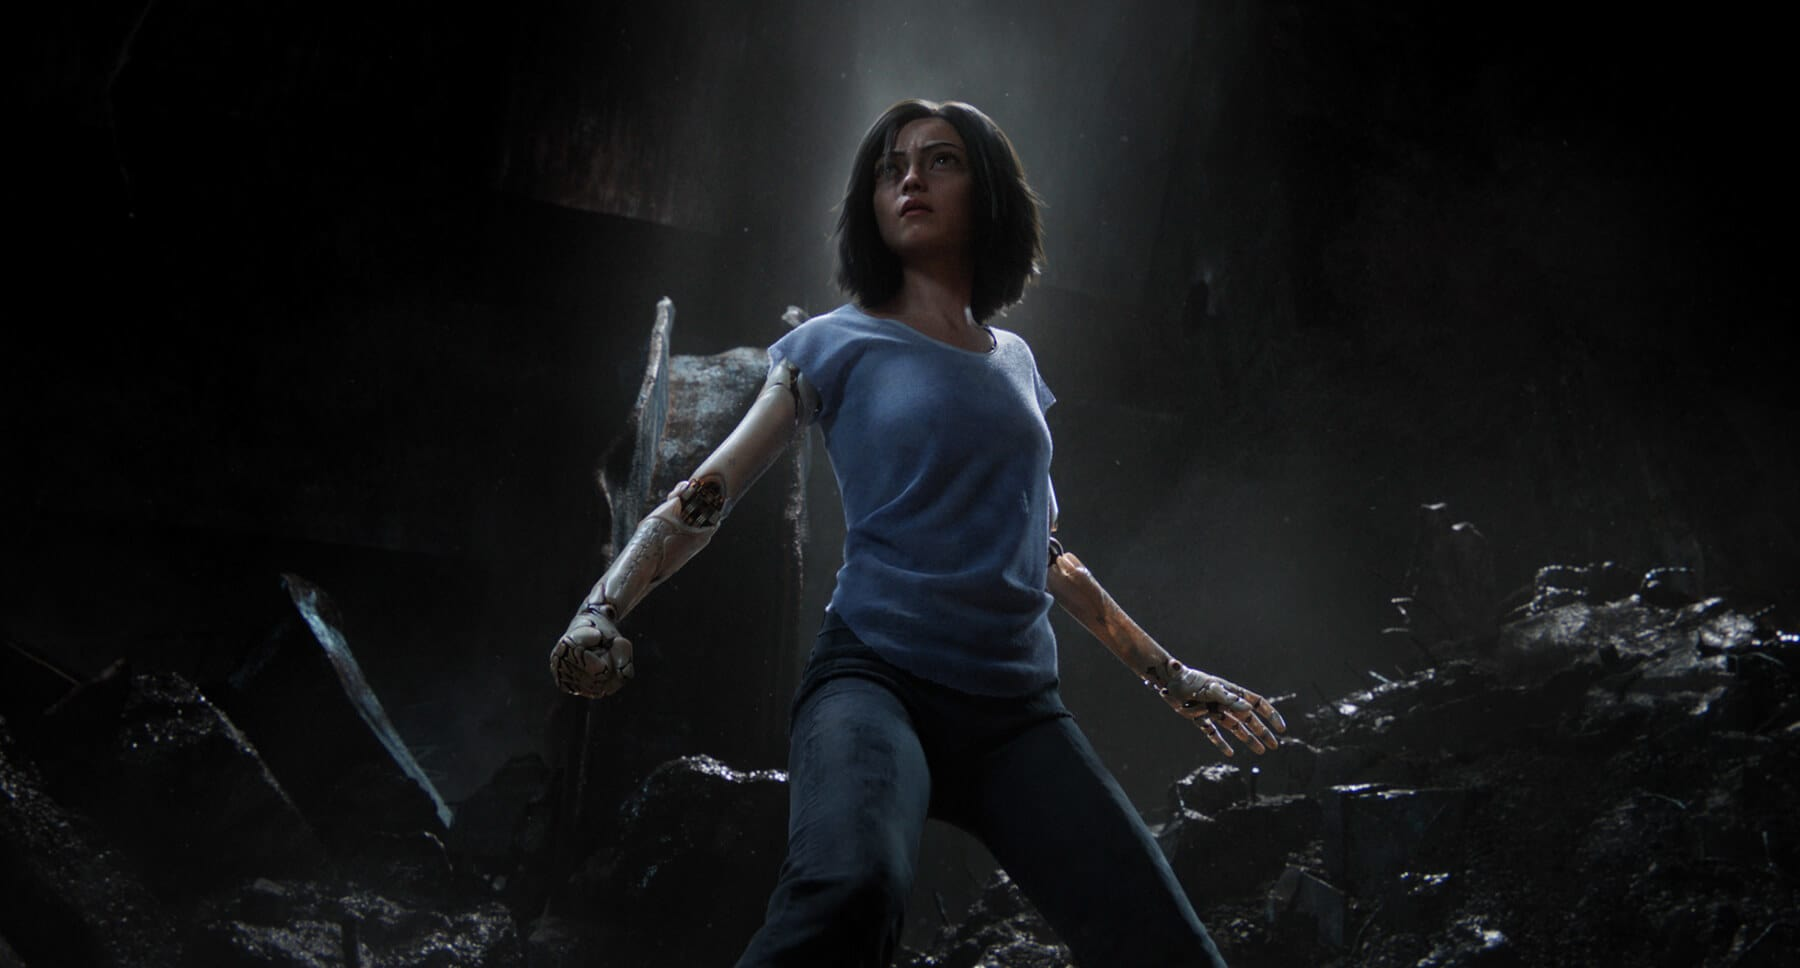 Rosa Salazar as Alita from the movie Alita: Battle Angel